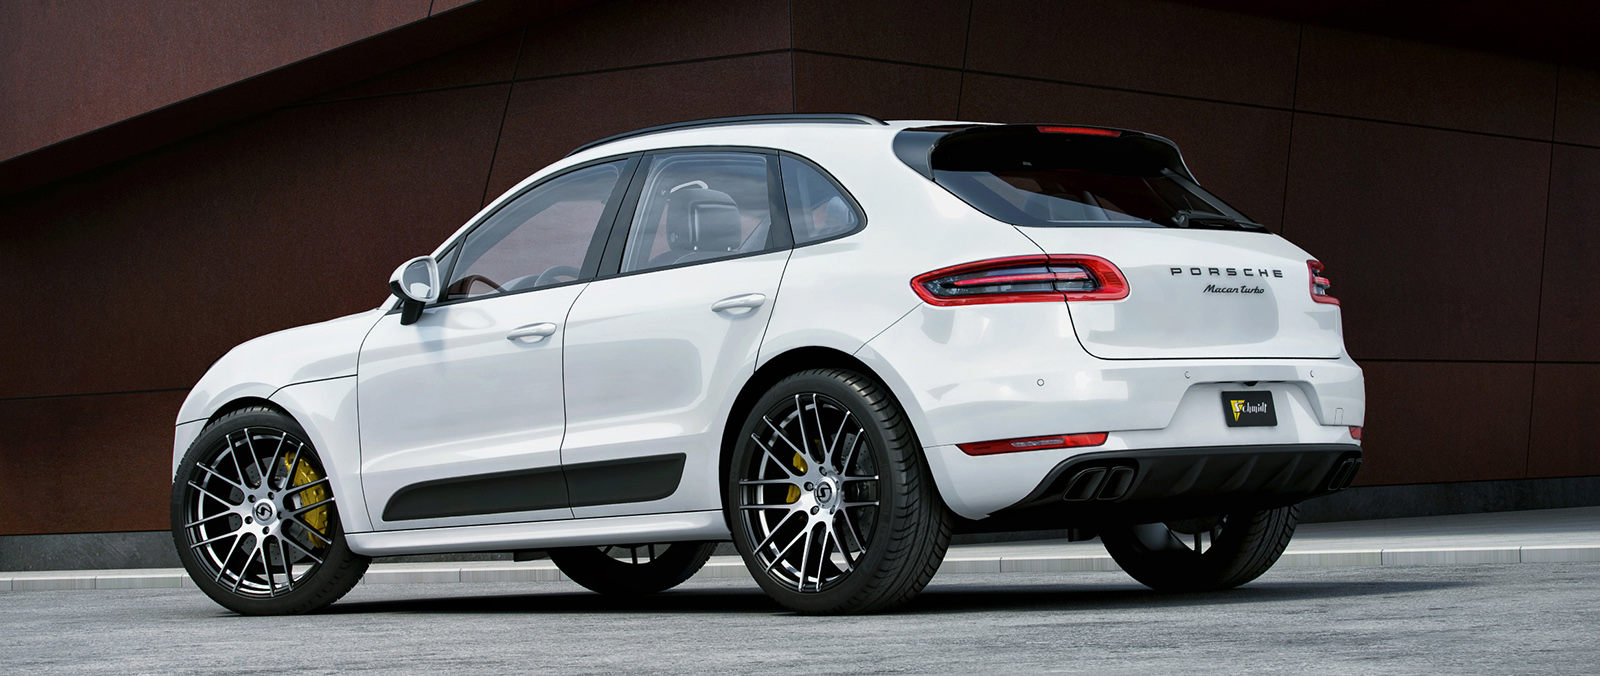 porsche macan met dikke velgen porsche. Black Bedroom Furniture Sets. Home Design Ideas